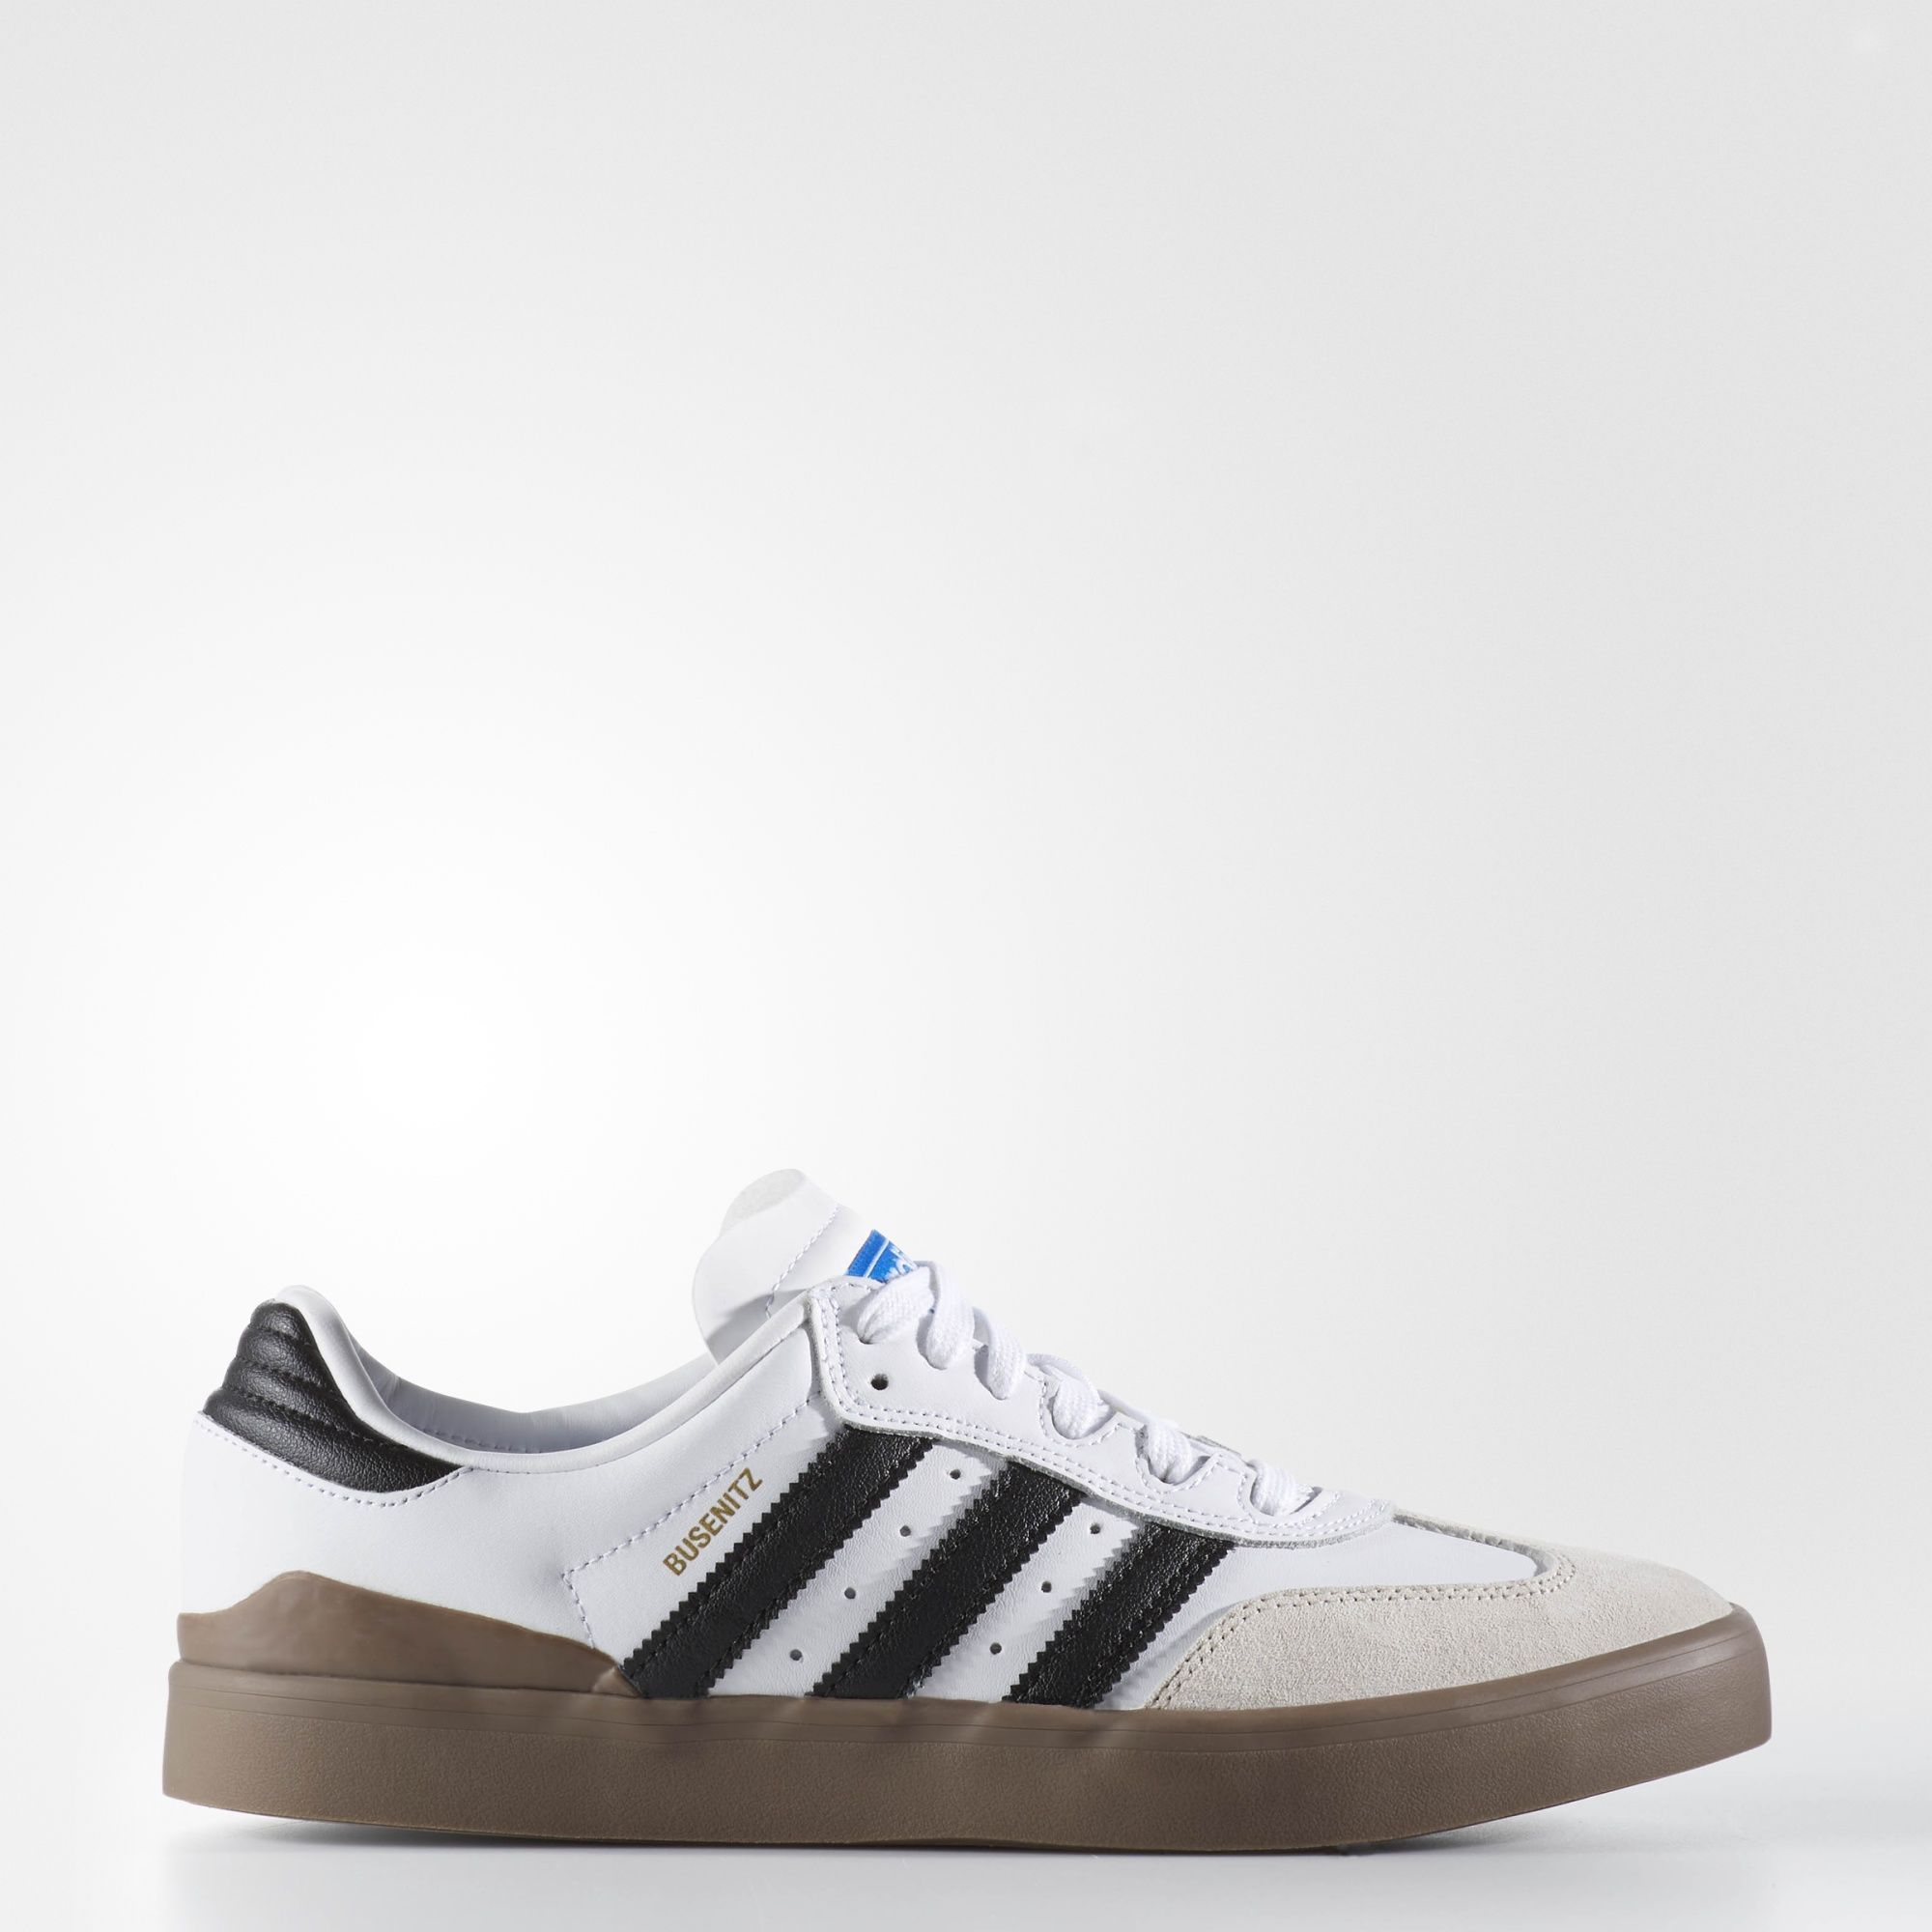 adidas - Busenitz Vulc RX Shoes